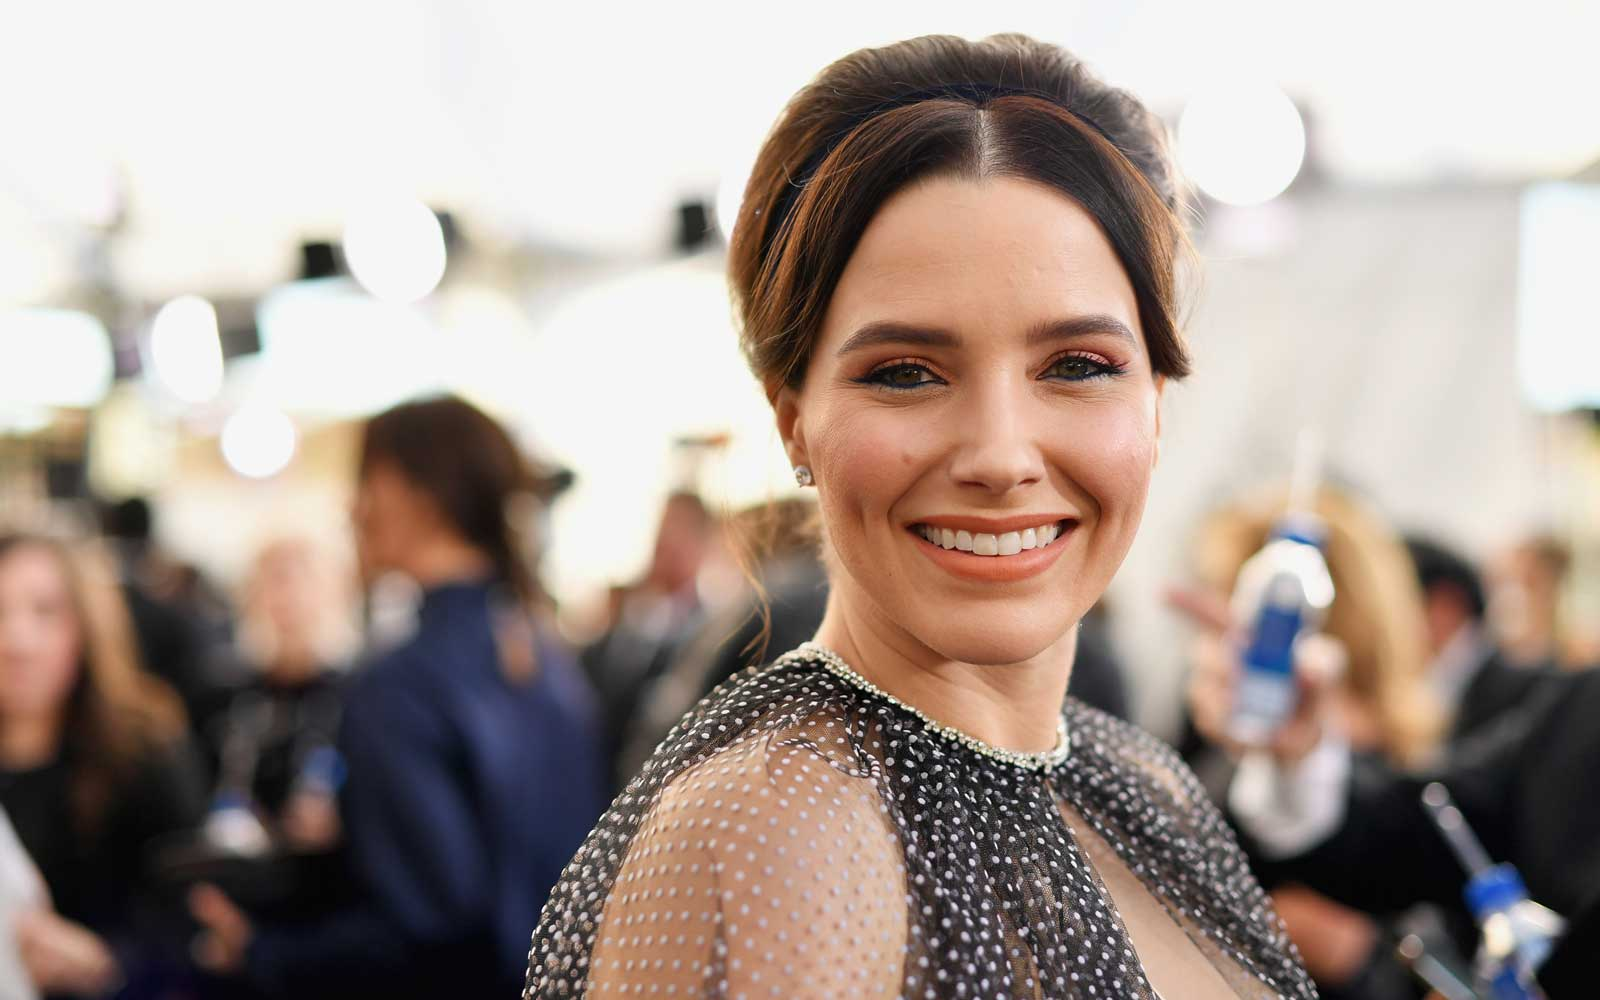 Sophia Bush attends the 25th Annual Screen Actors Guild Awards at The Shrine Auditorium on January 27, 2019 in Los Angeles, California